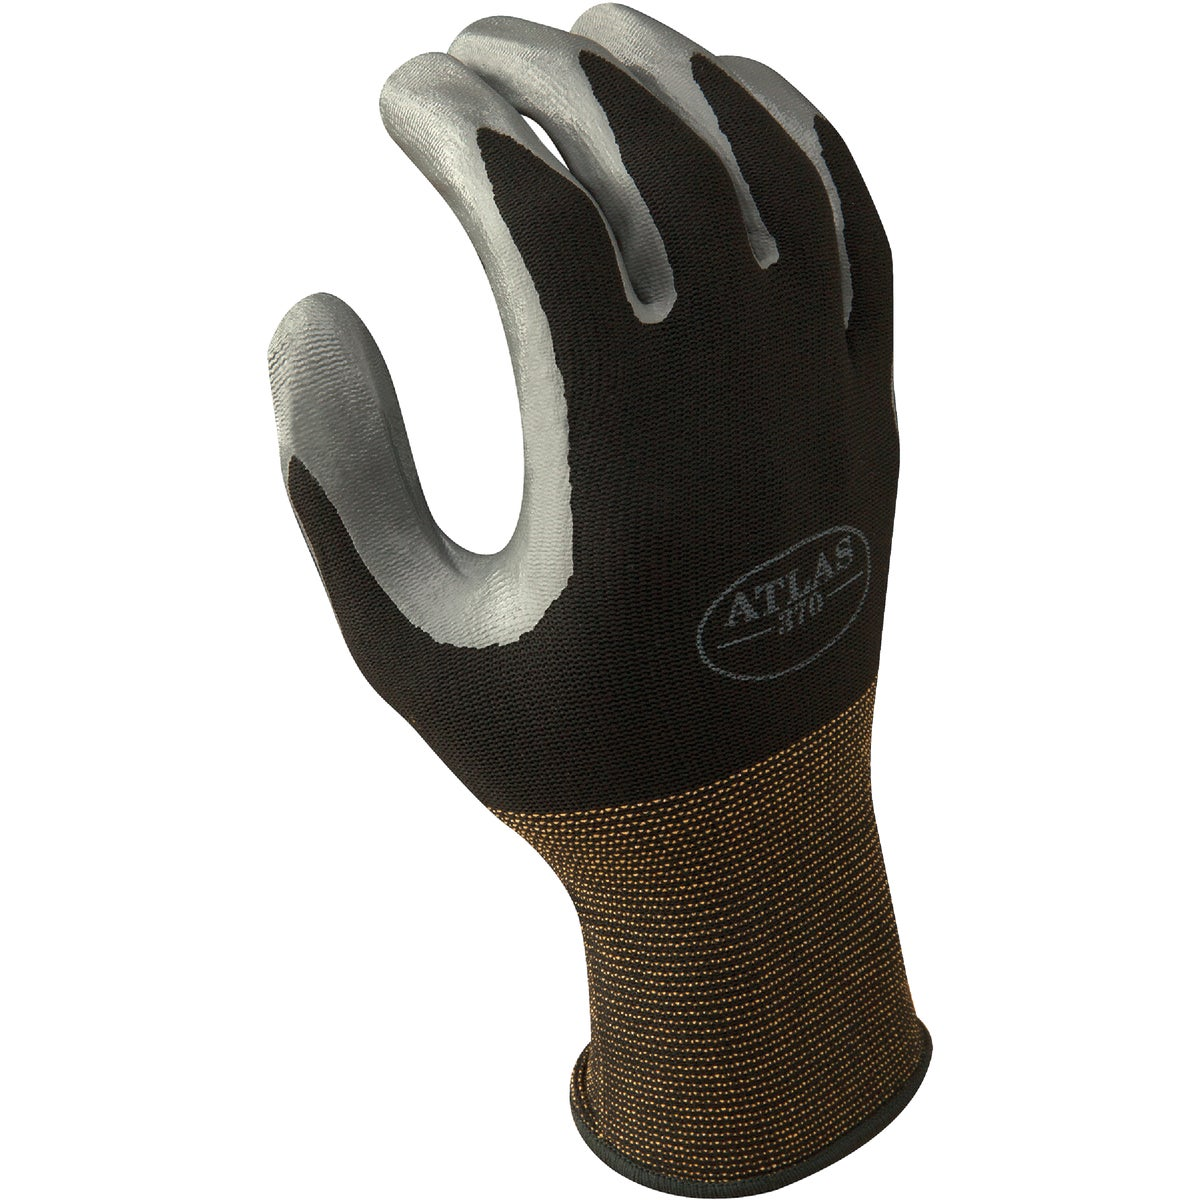 XL BLK NITRILE GLOVE - 370BXL-09.RT by Showa Best Glove